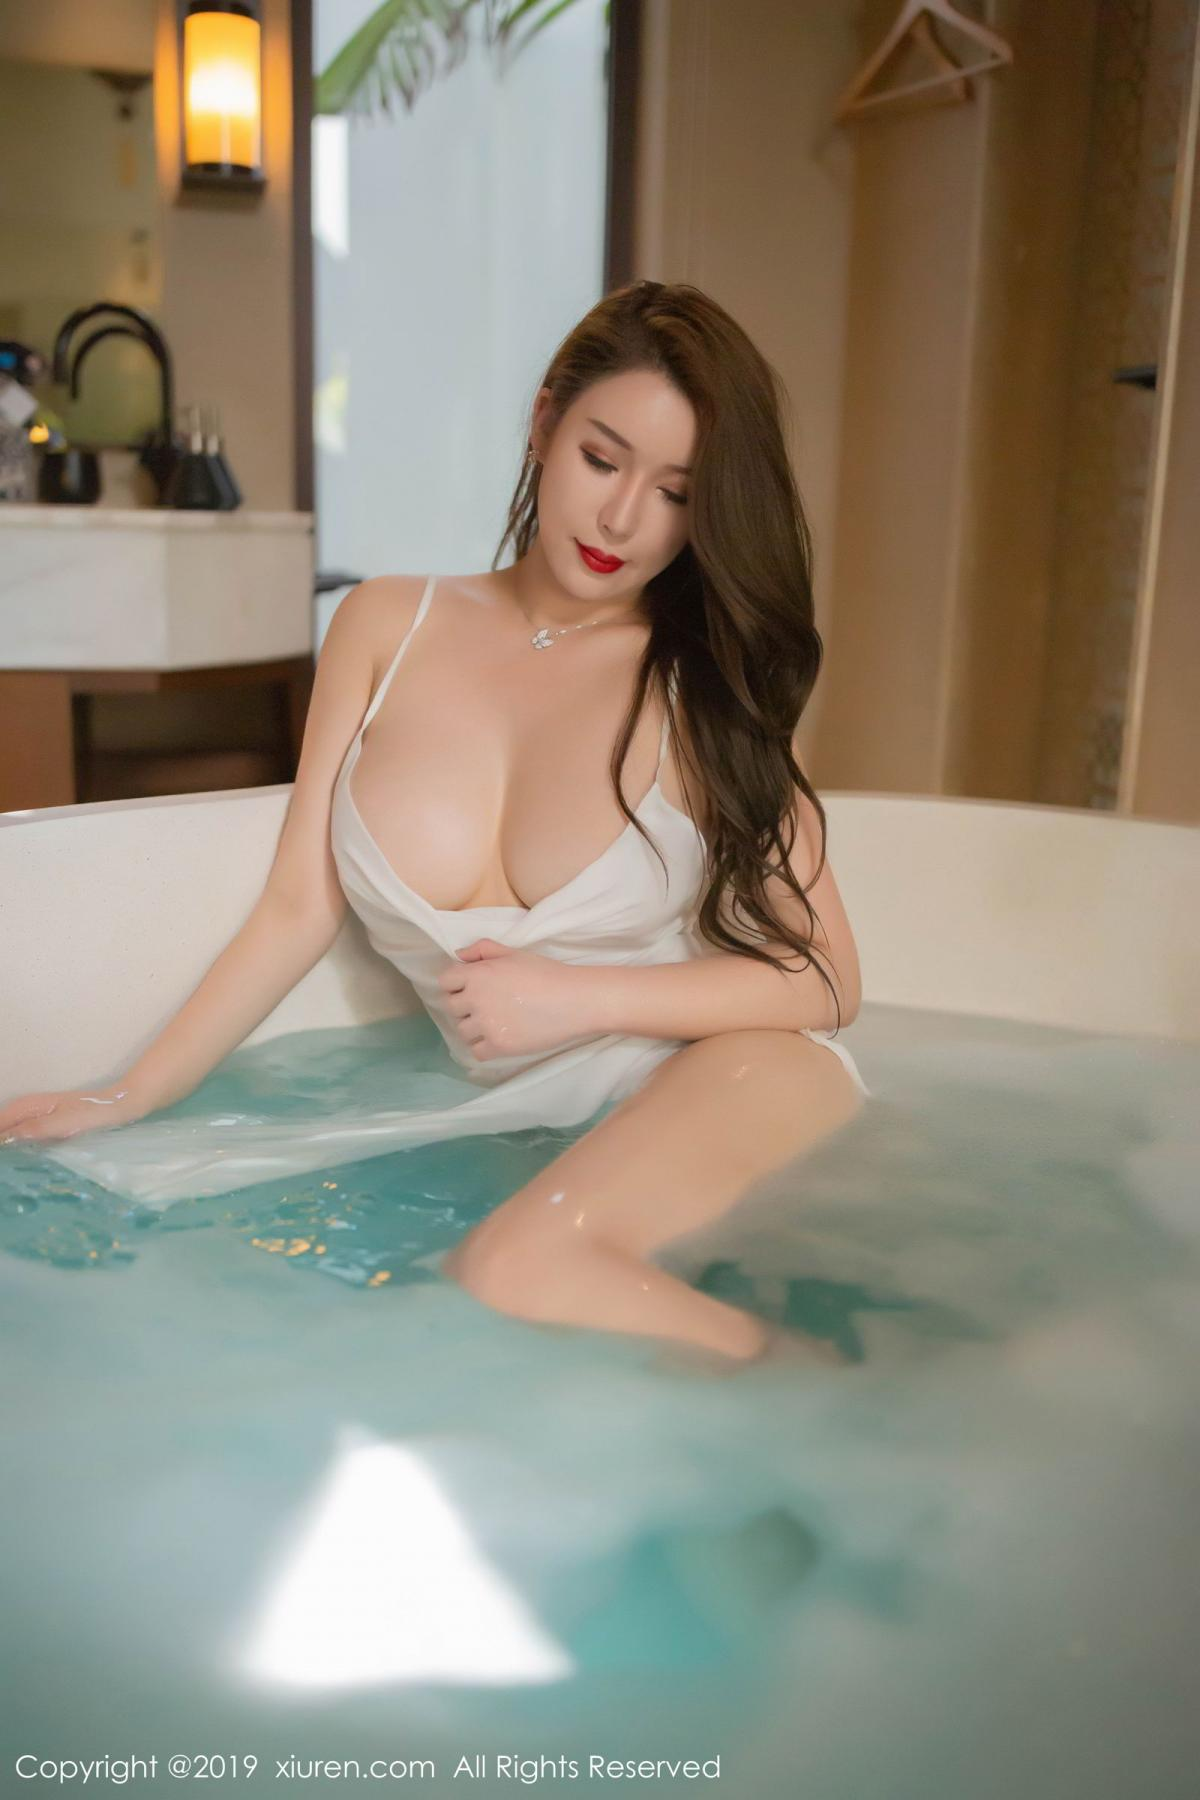 [XiuRen] Vol.1510 Egg Younisi 41P, Bathroom, Big Booty, Egg Younisi, Wet, Xiuren